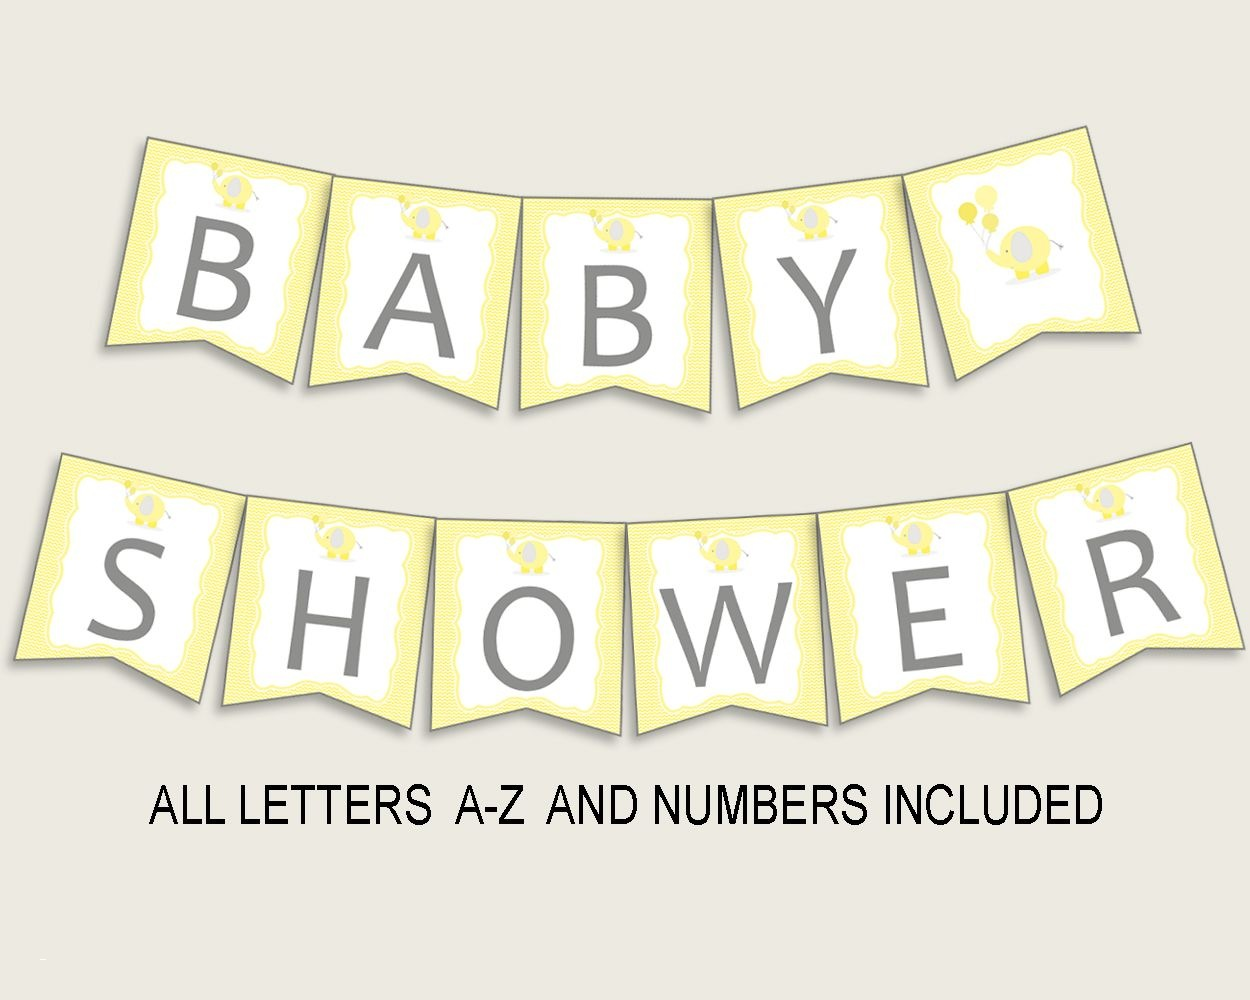 Full Size of Baby Shower:89+ Indulging Baby Shower Banner Picture Inspirations Baby Shower Banner Banner Ideas For Baby Shower Luxury Banner Baby Shower Banner Yellow